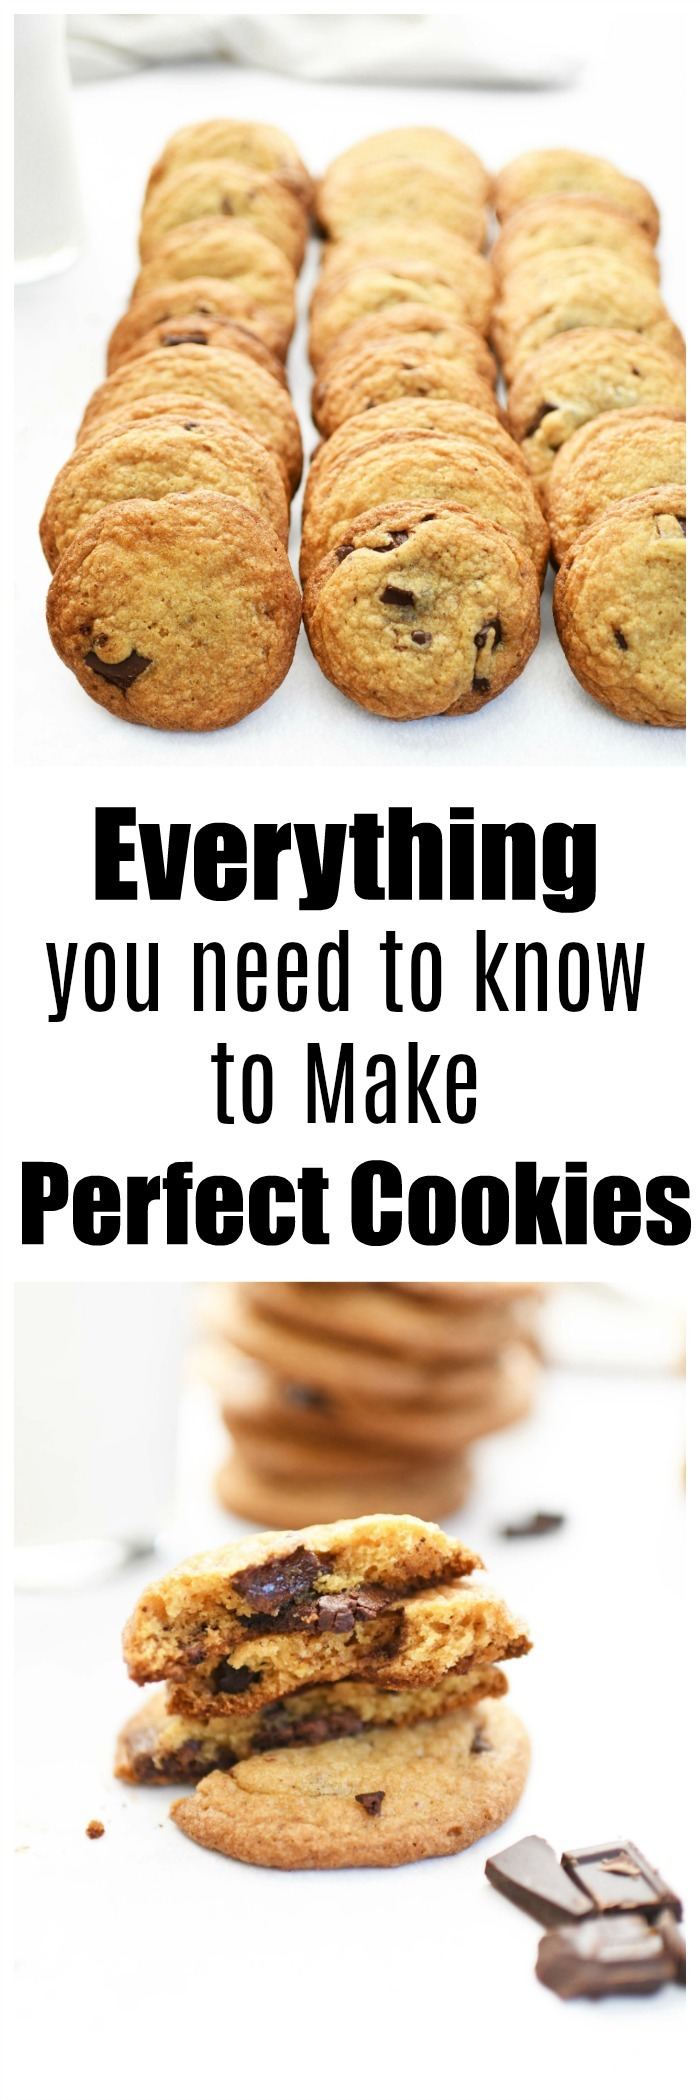 Making Cookies – A Complete Guide To Chewy Perfection!